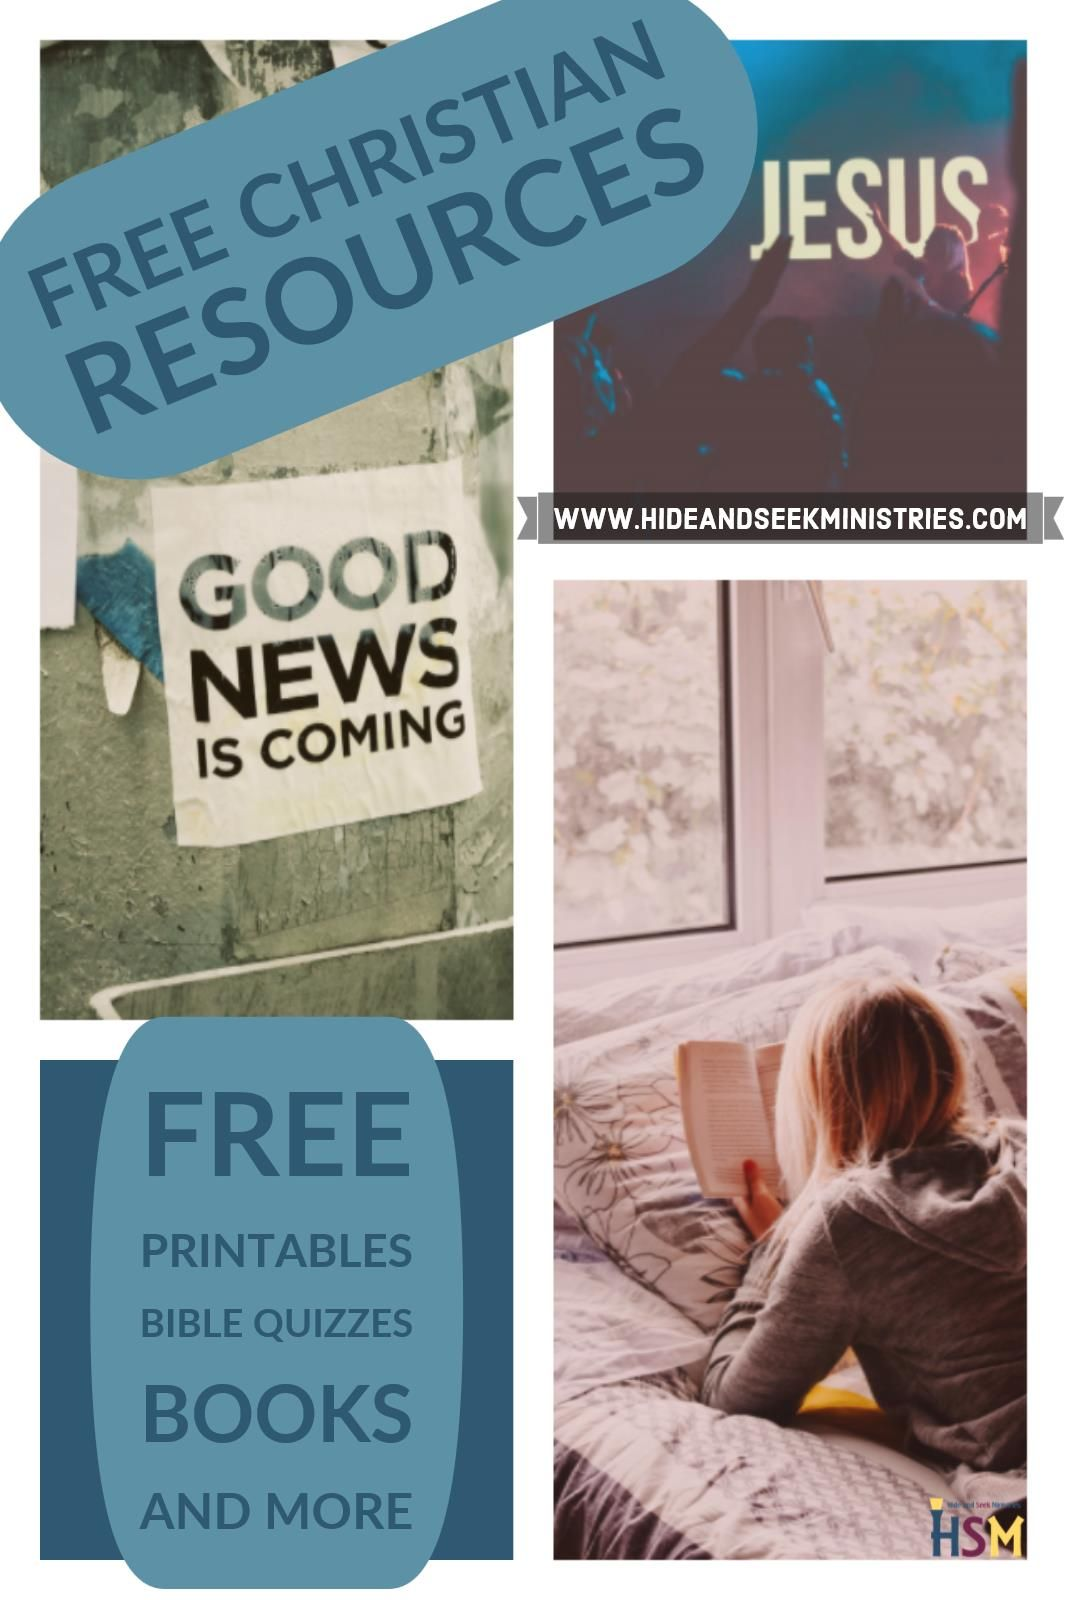 Free worksheets. Easy to print, no sign up required. Plus bible ...